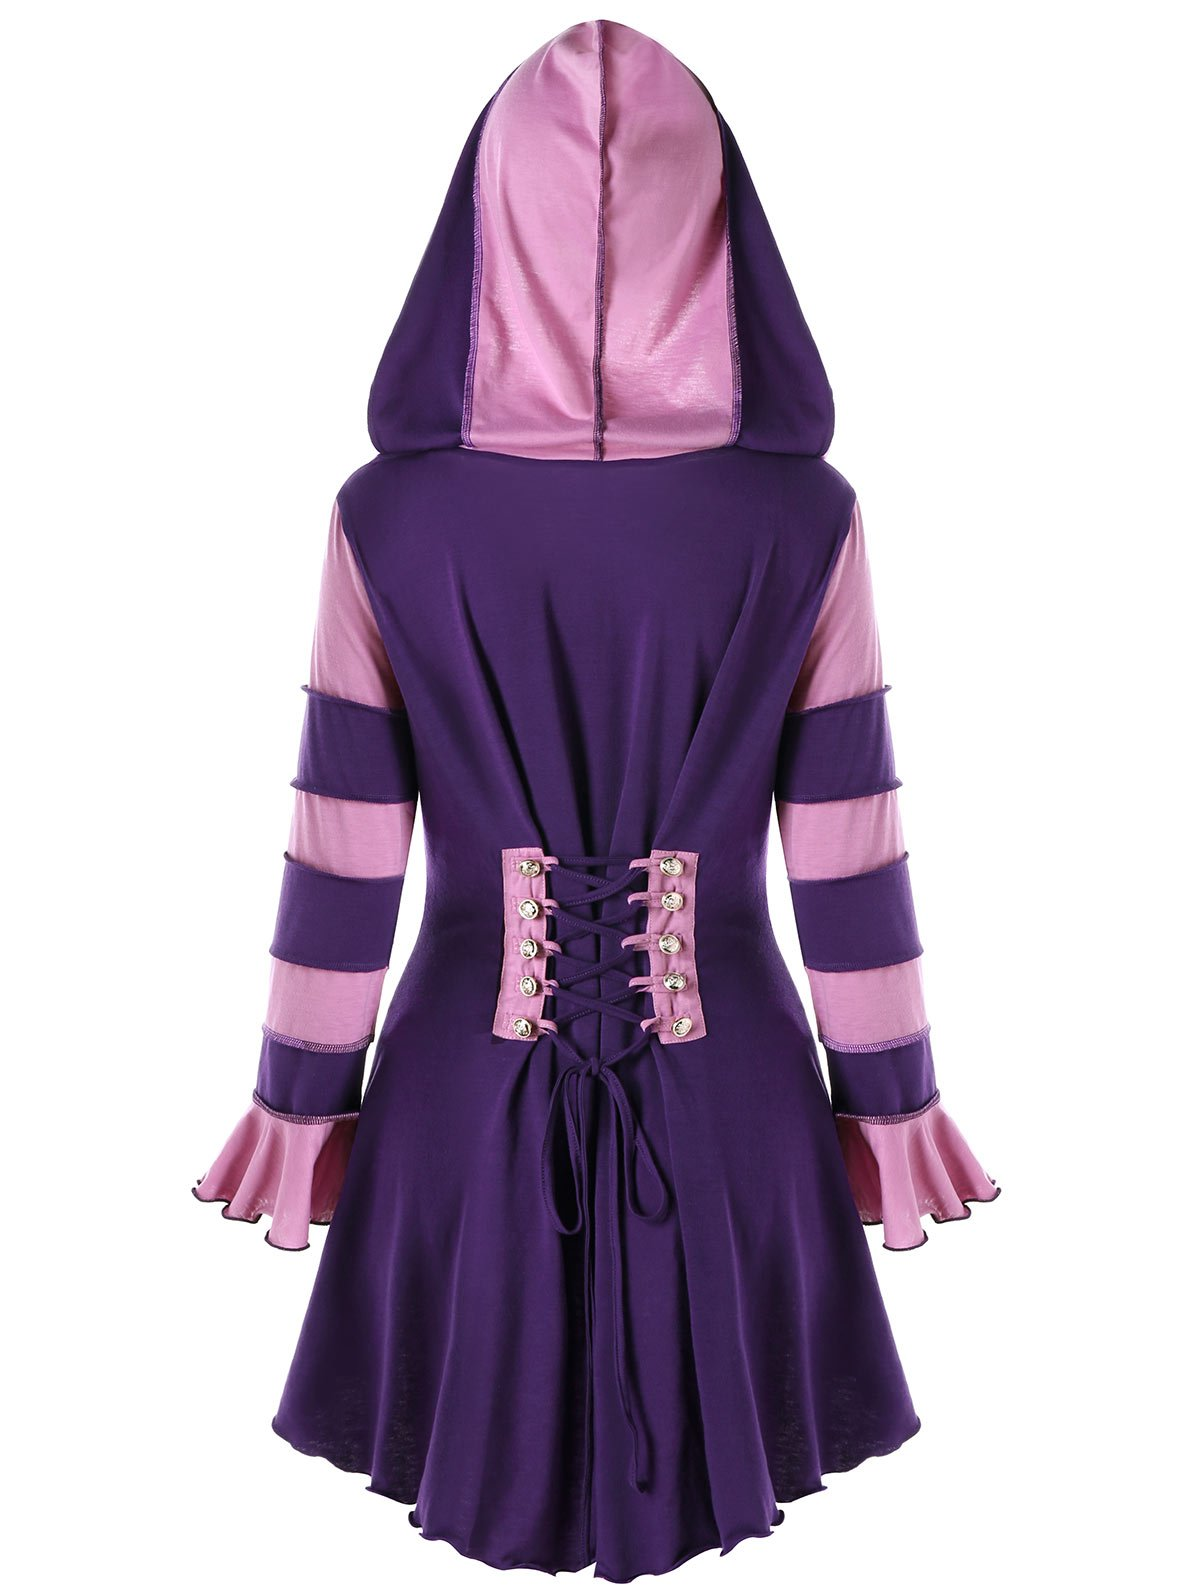 CharMma Women's Hooded Lace Up Double Breasted High Low Corset Jacket Coat (Purple, 2XL)